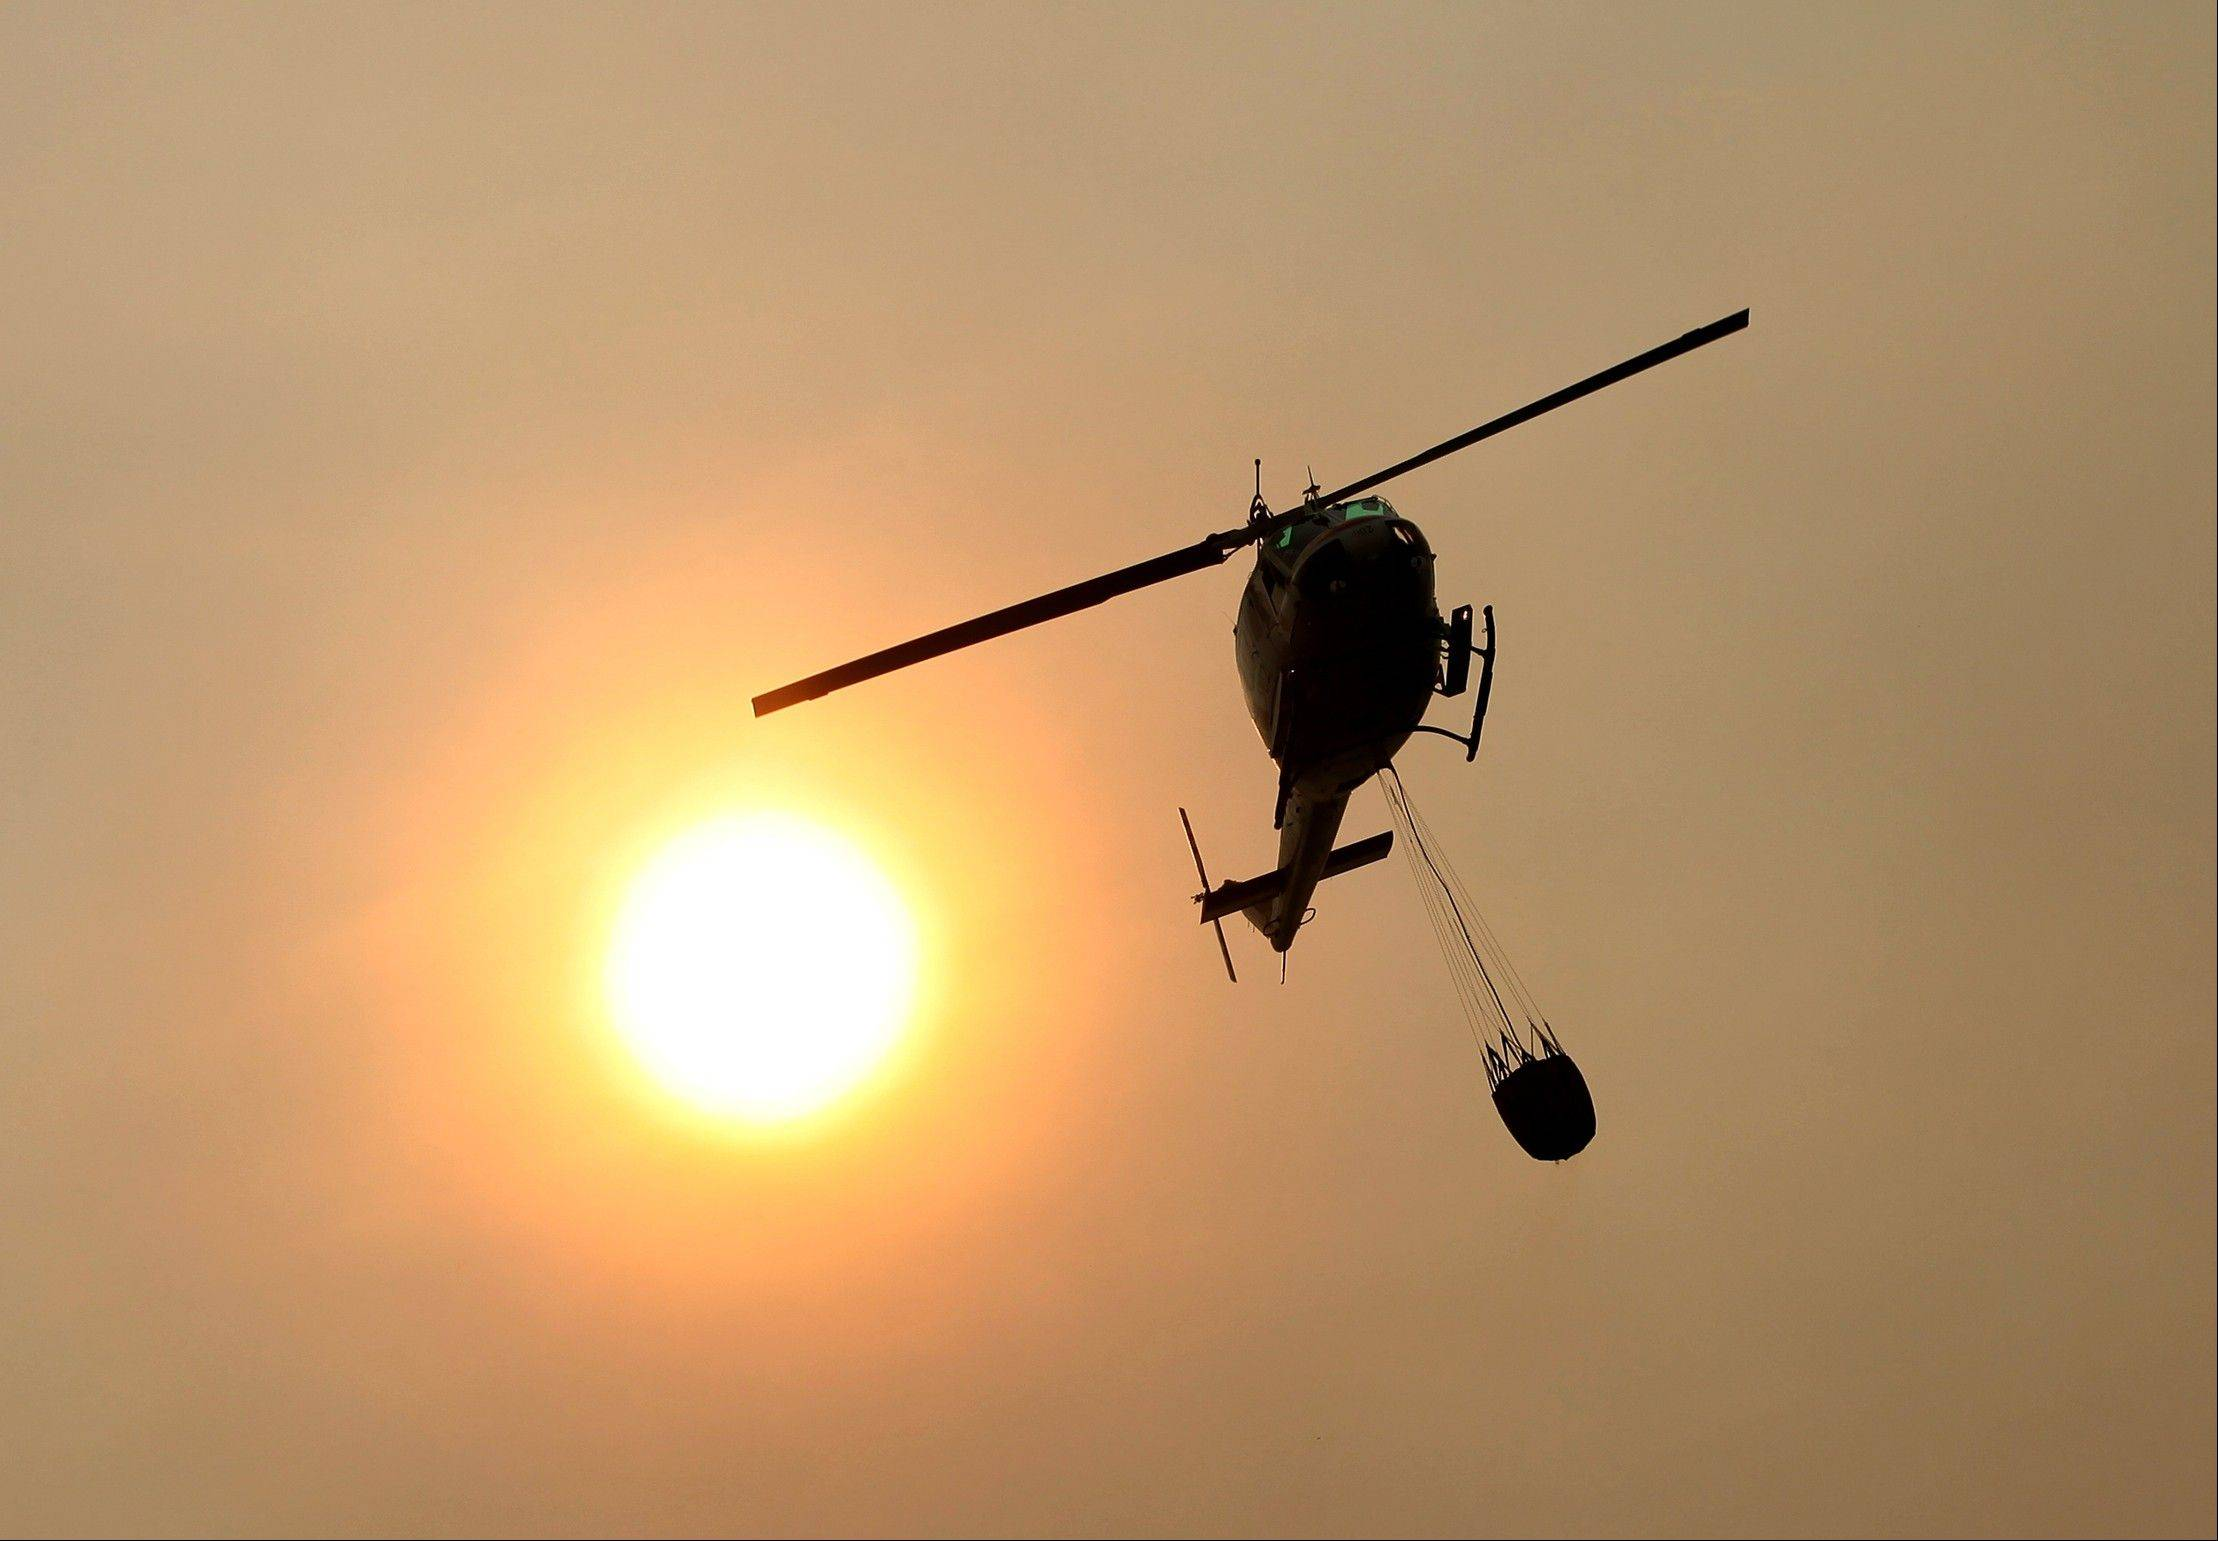 A Cal Fire helicopter flies over Pfeiffer Ridge on Monday, Dec. 16, 2013, in Big Sur, Calif. The wildfire burning Monday in the Big Sur area of California destroyed at least 15 homes and forced about 100 people to evacuate as it chewed through dry vegetation on its way toward the ocean.